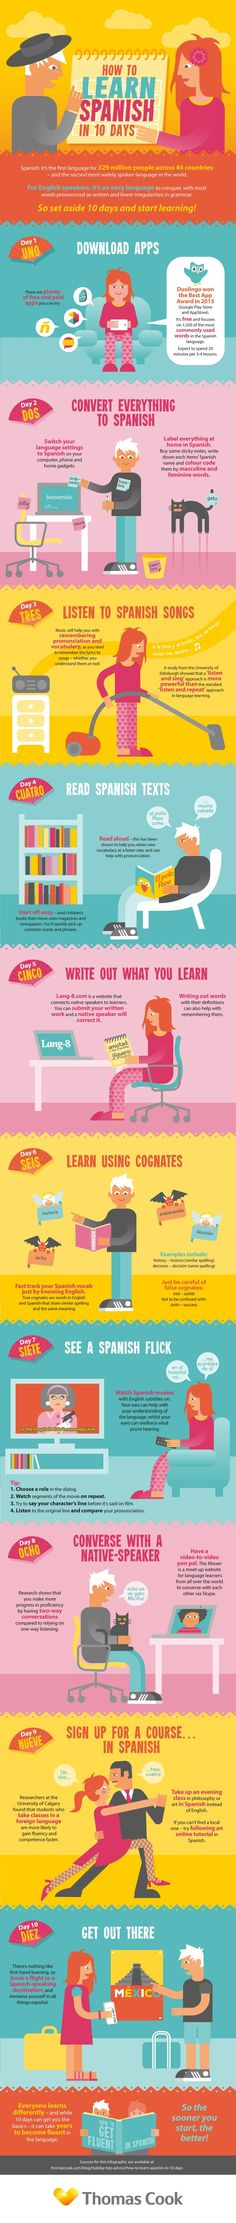 How to Learn Spanish in 10 Days #infographic